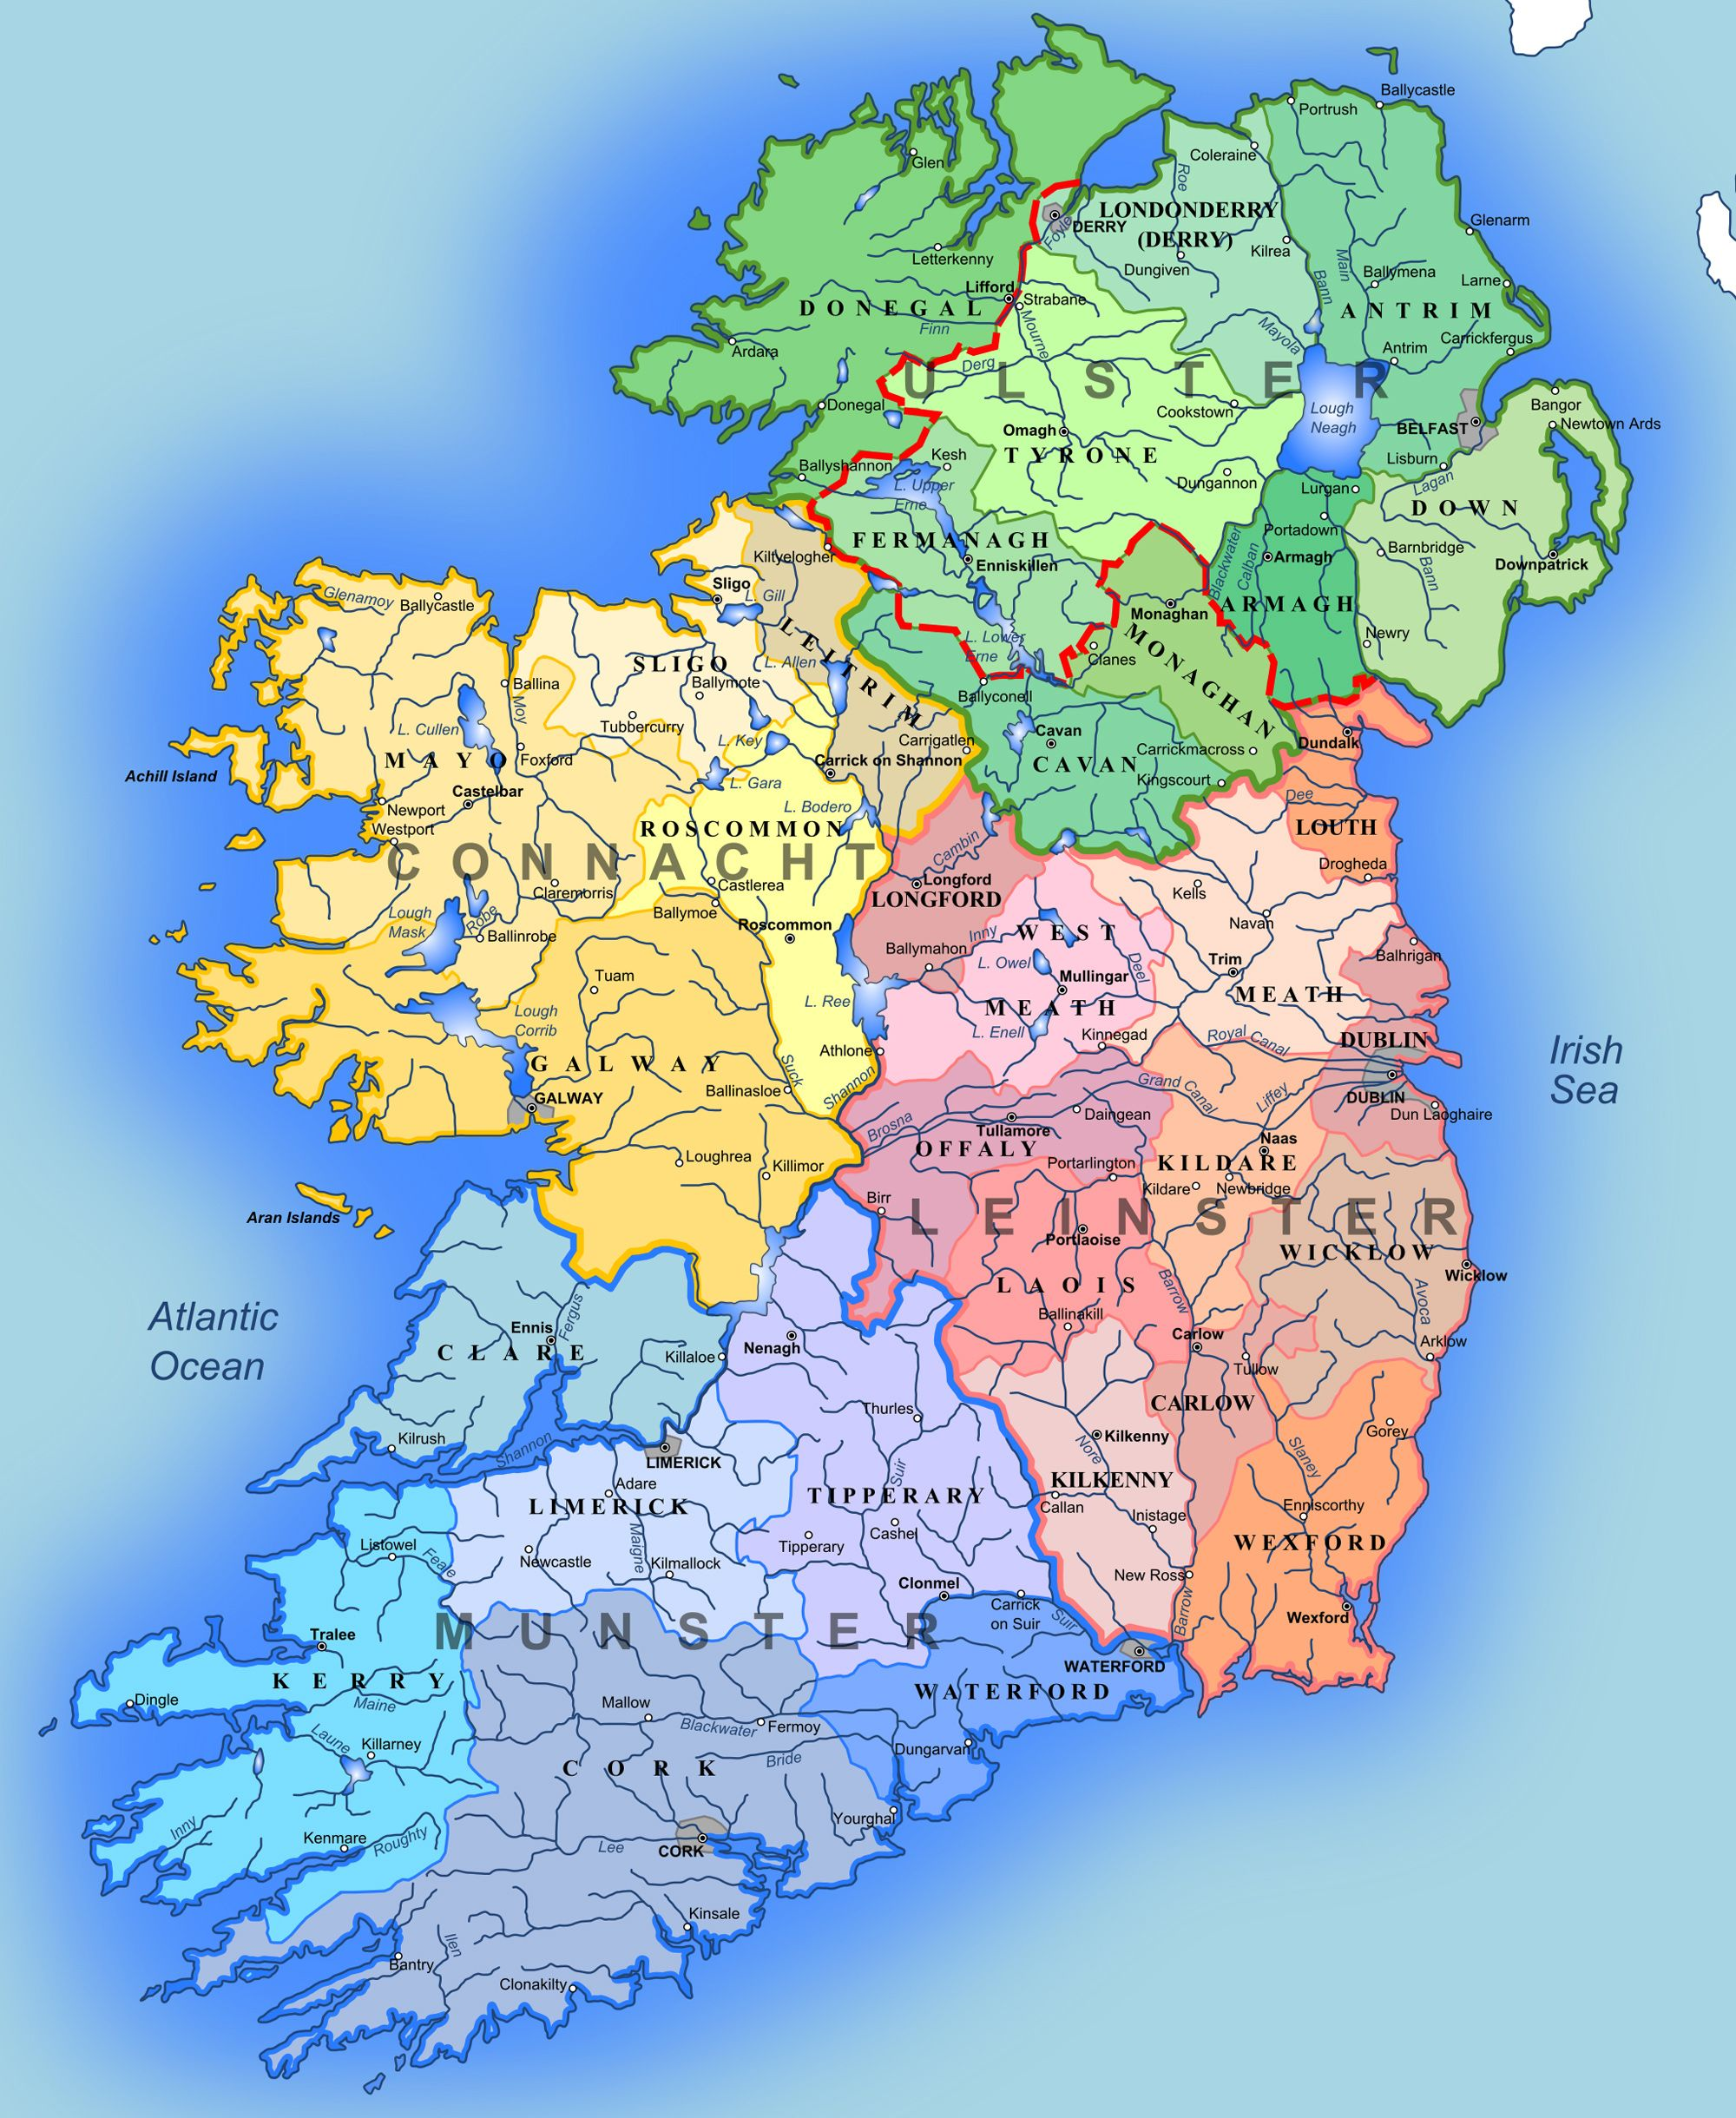 Big Thicc Map Of Ireland Irland Reise Irland Irland Karte